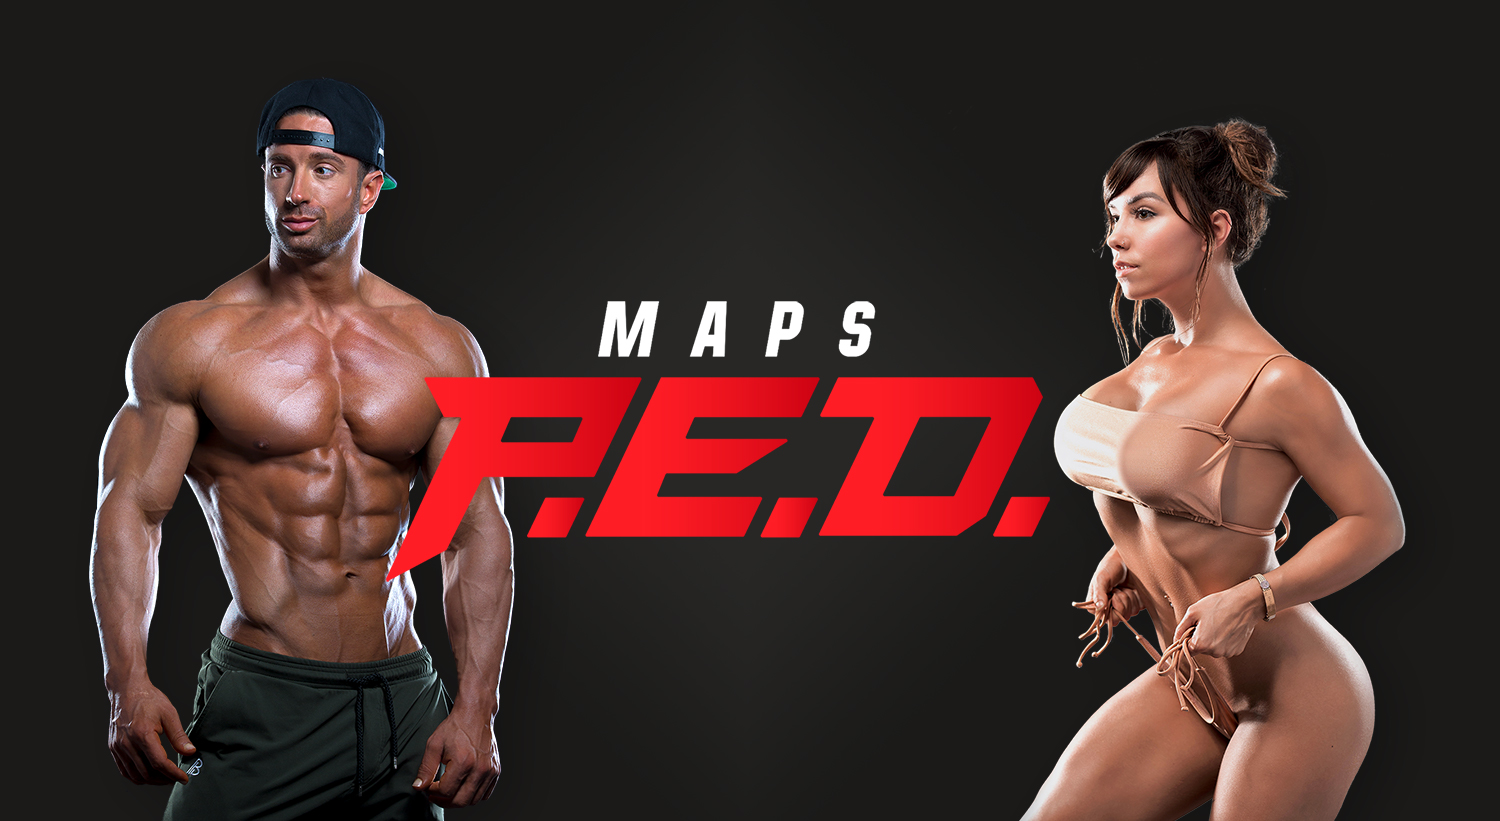 MAPS P.E.D. | Mind Pump Media